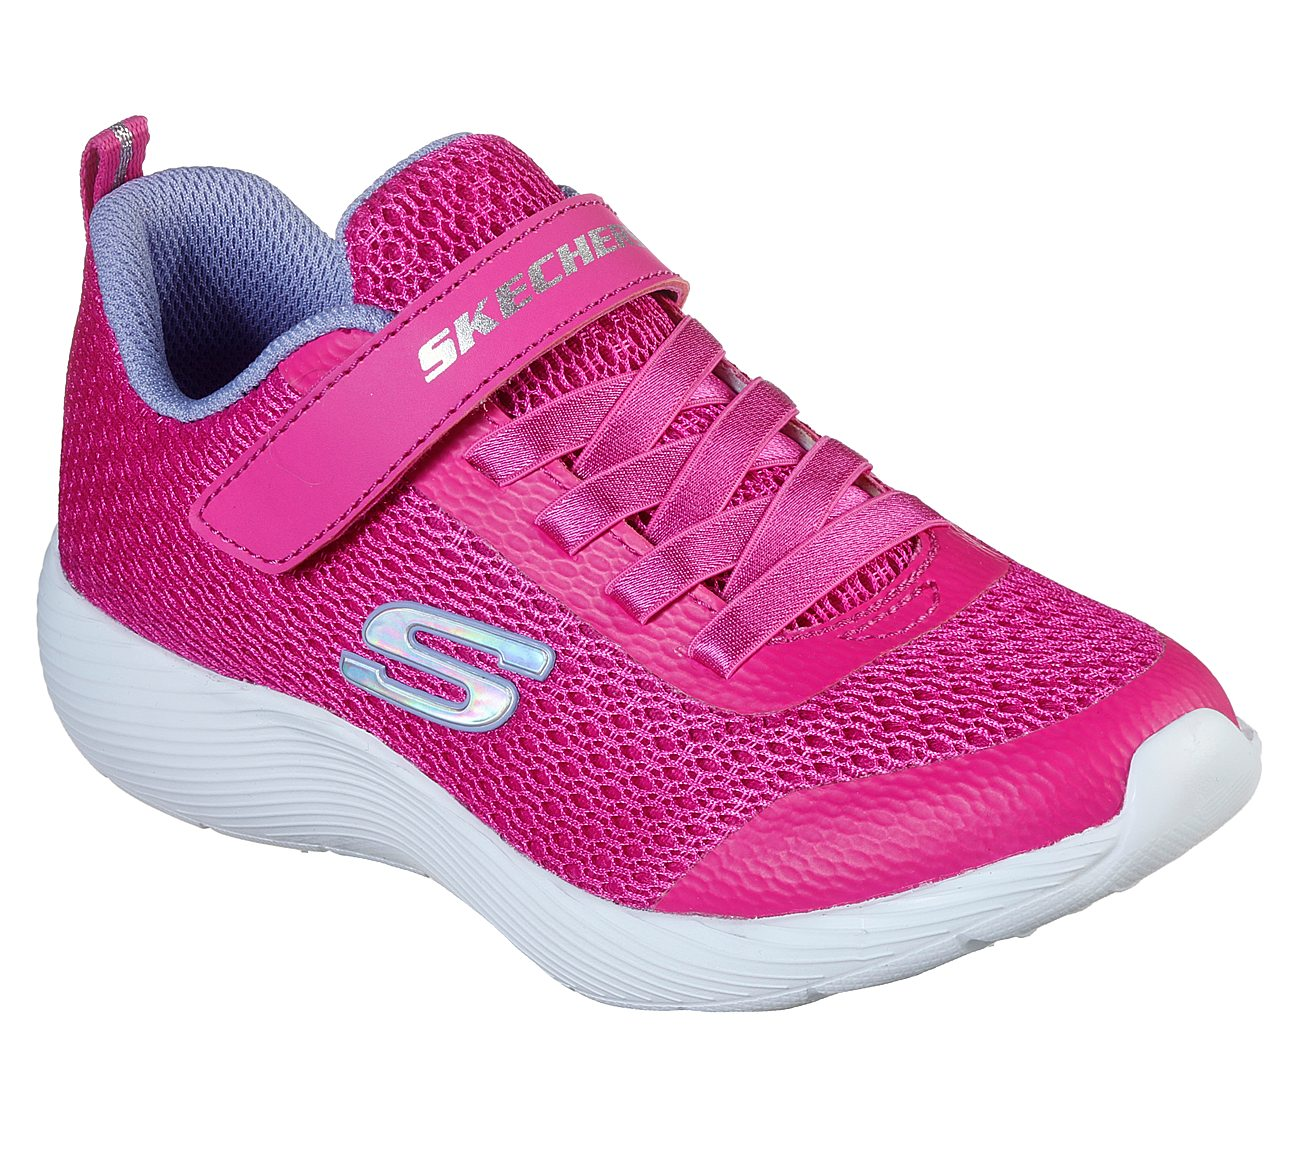 61dedc19a06 Buy SKECHERS Dyna-Lite Sport Shoes only  39.00